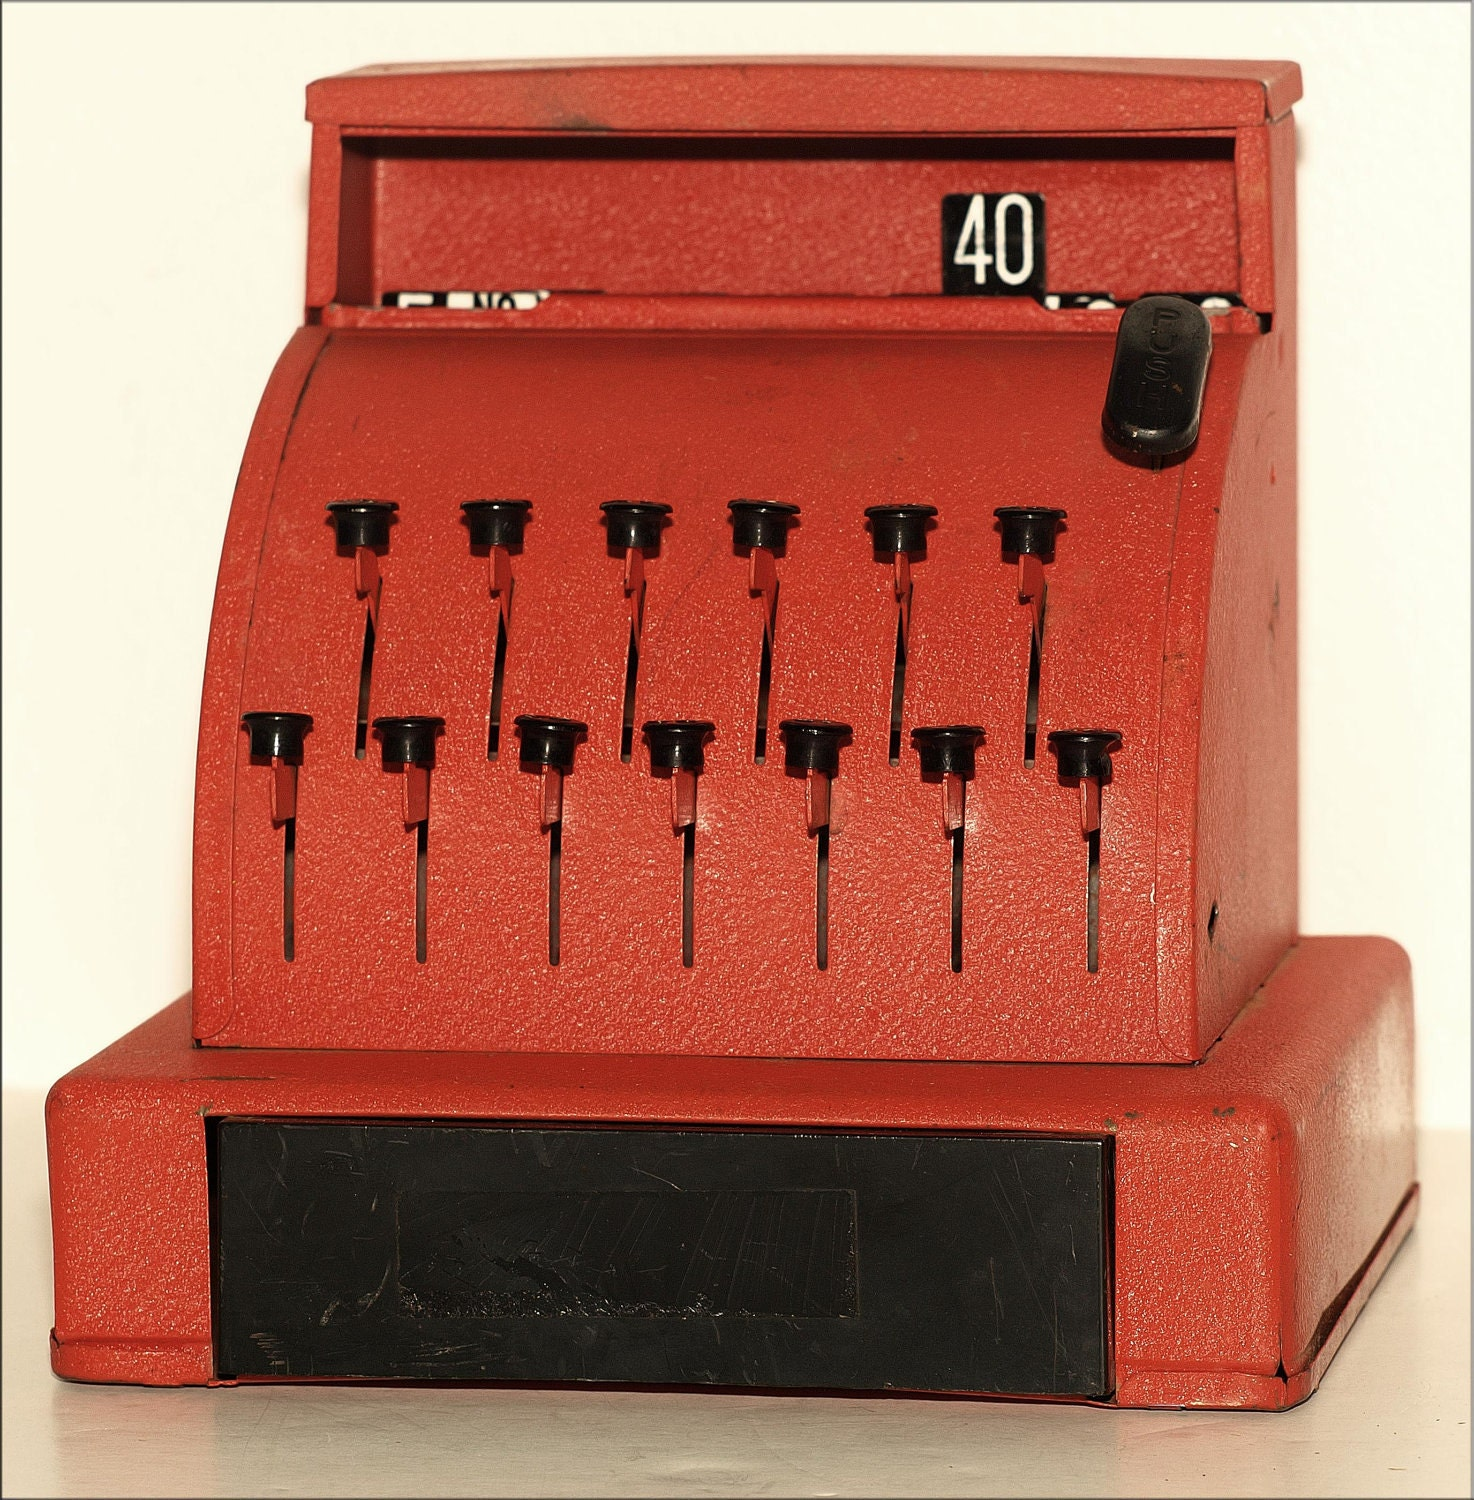 Toy Cash Register : Red vintage toy cash register fun for your child a